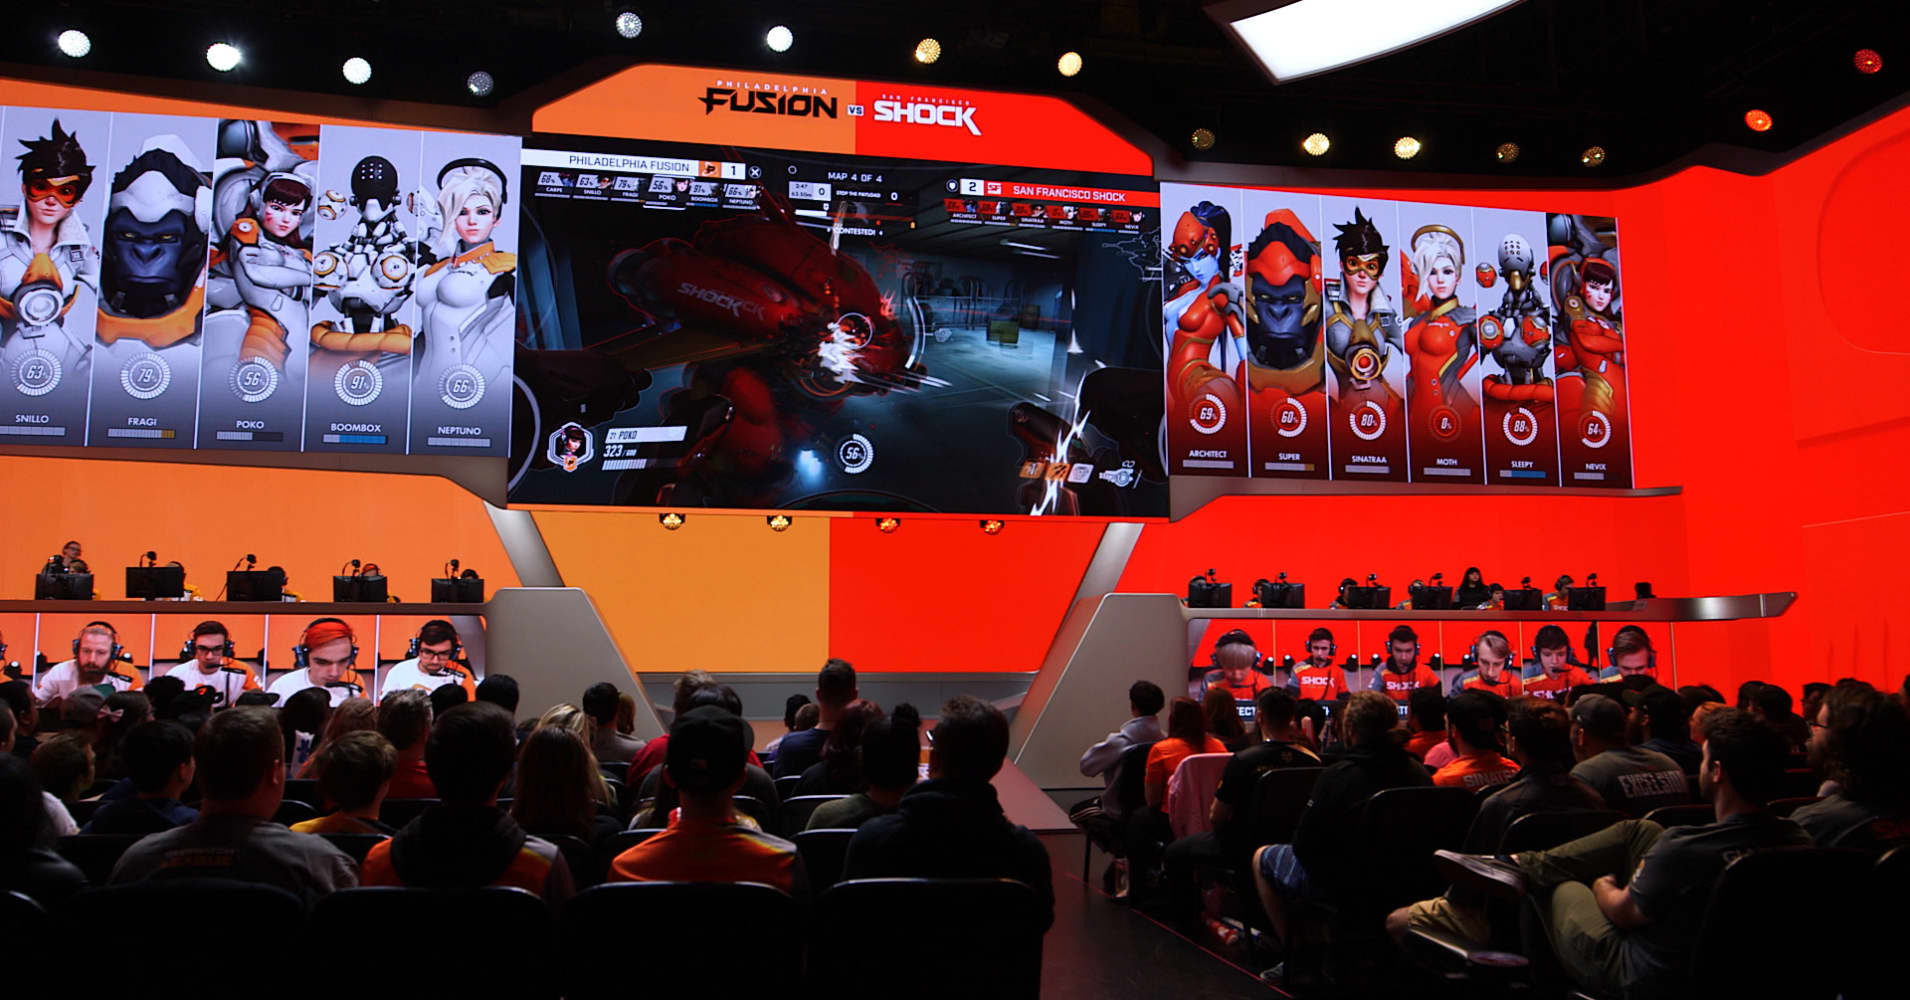 Players in the Overwatch League compete in an arena at The Burbank Studios.